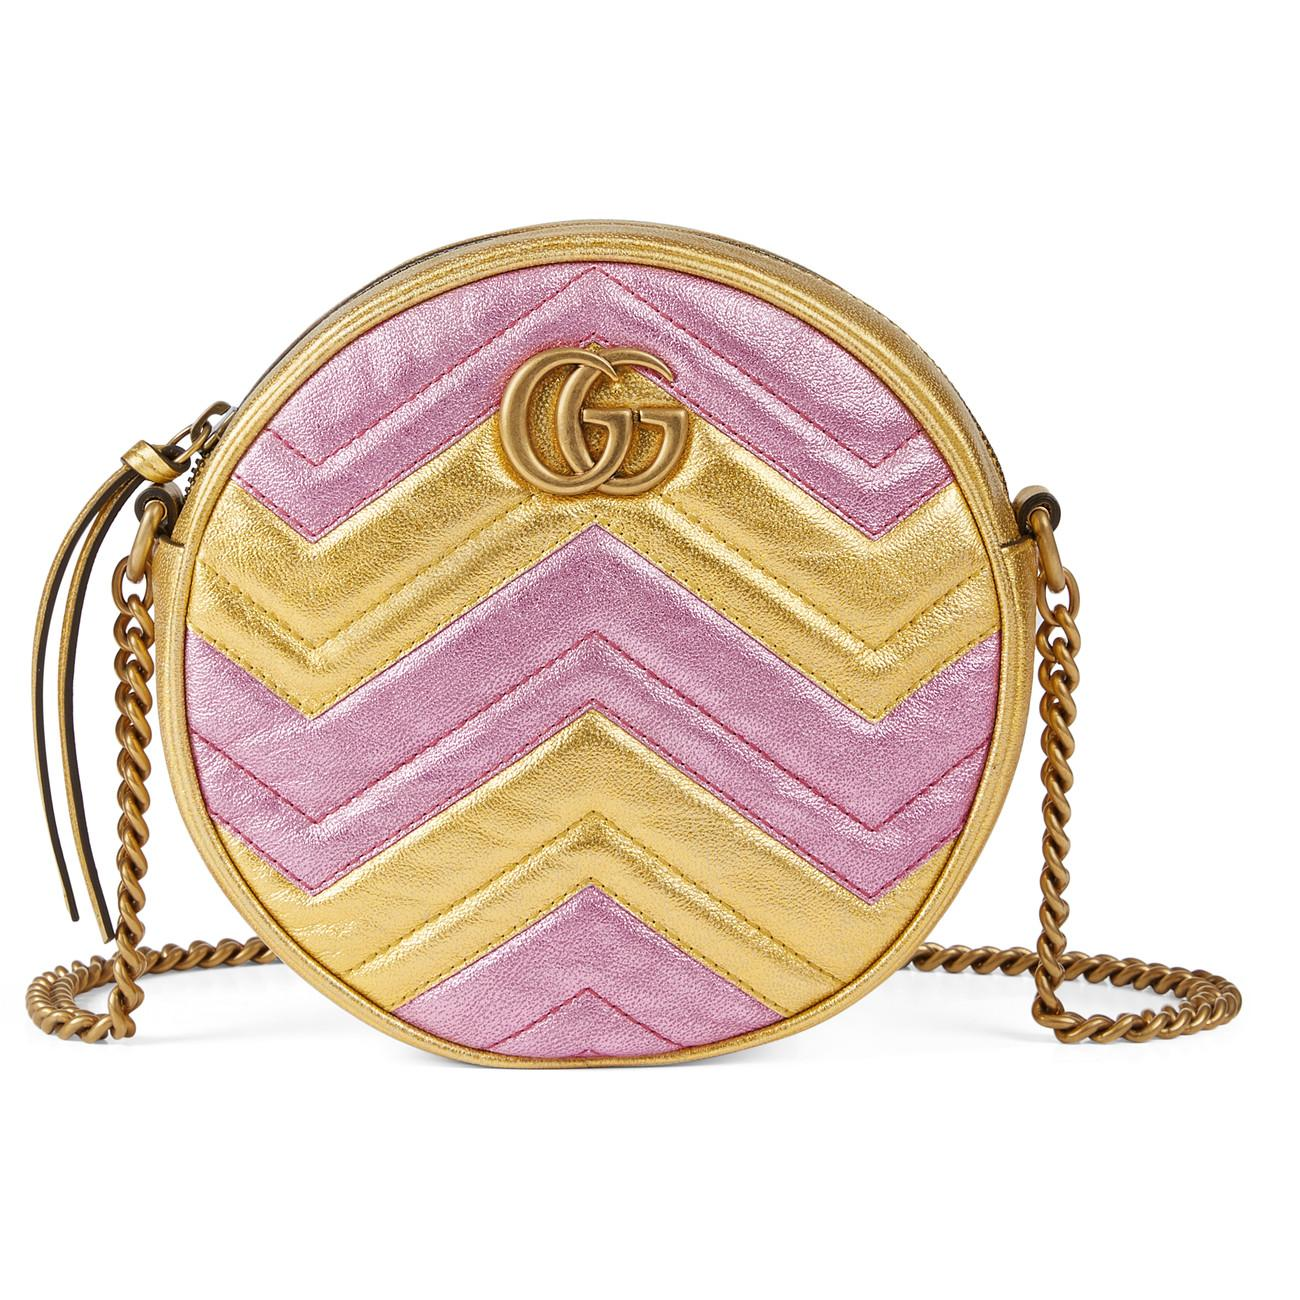 dcba3d5e9 Gucci Gg Marmont Mini Round Shoulder Bag in Pink - Lyst